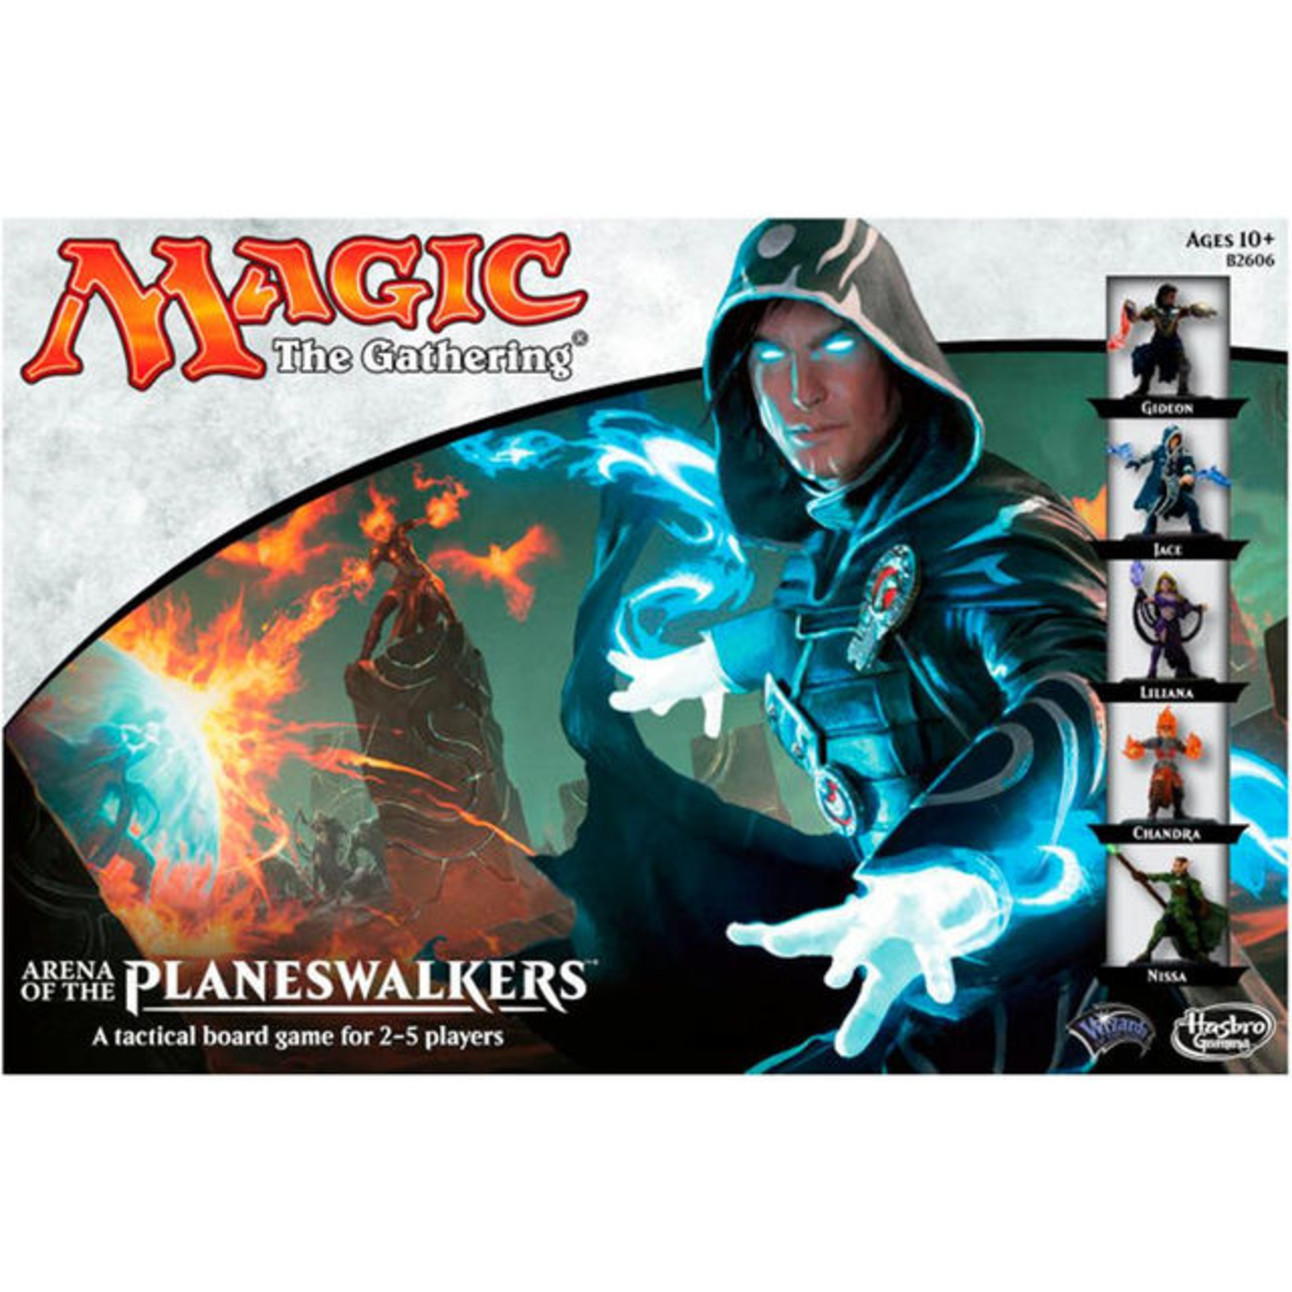 magic-the-gathering-arena-planeswalkers-game-63dc0989.zoom_.jpg